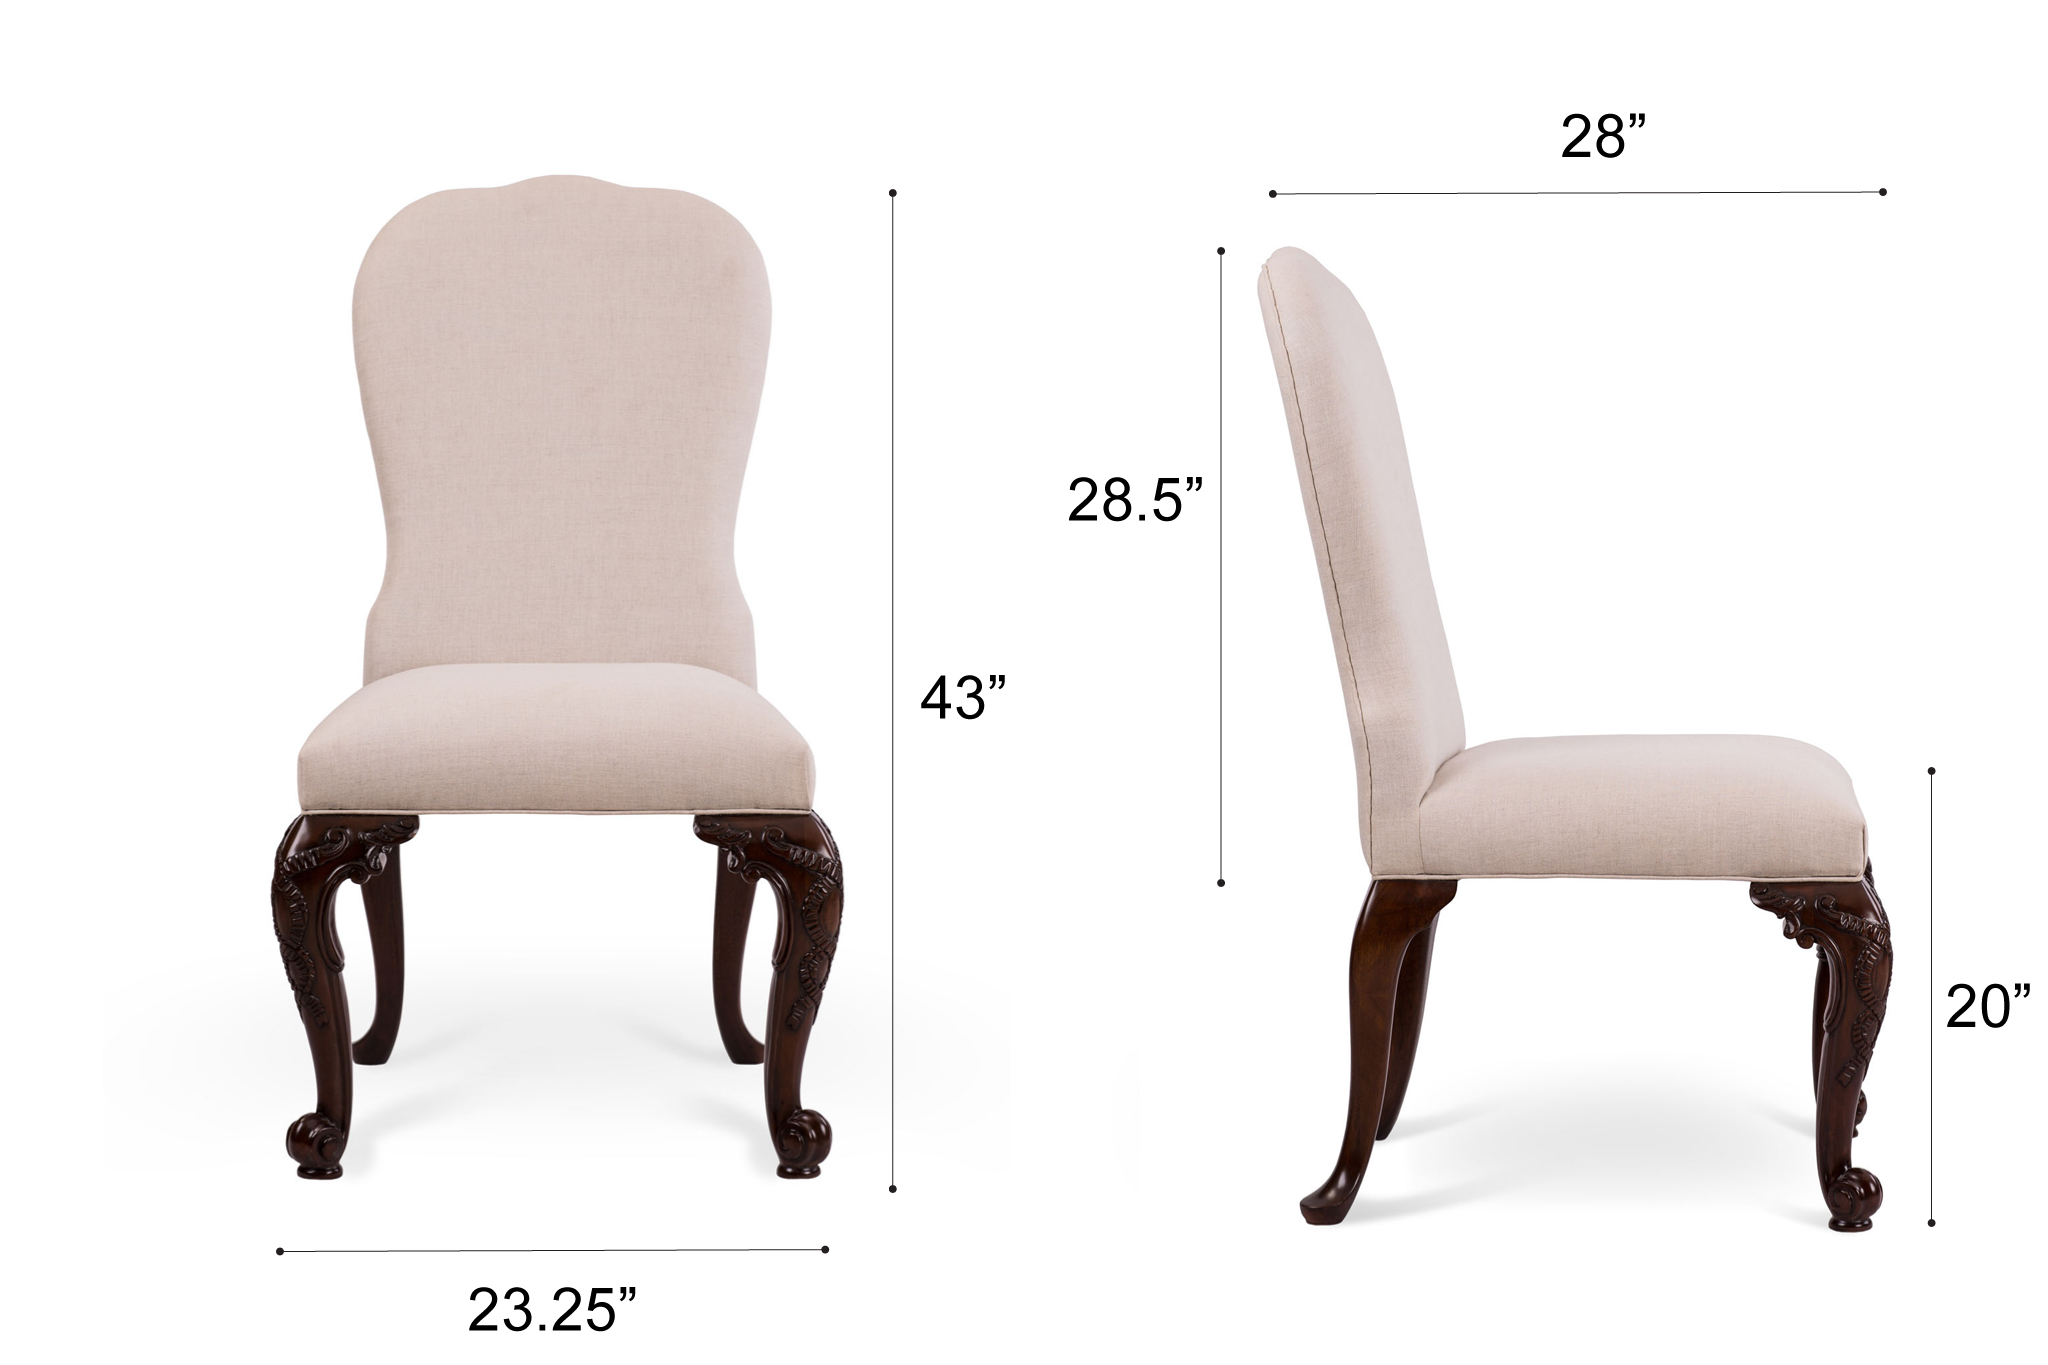 Dowel Furniture Maria Chair Dimensions